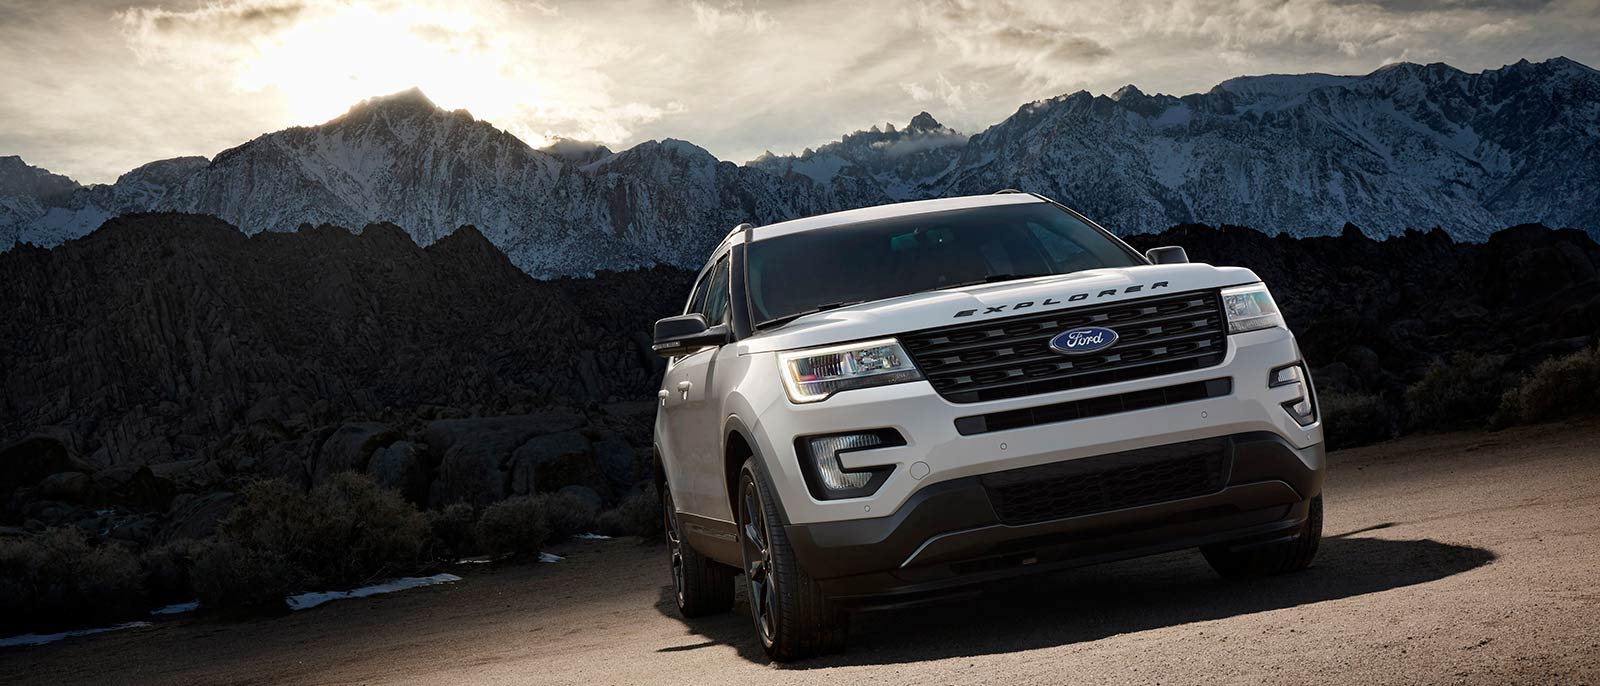 2017 ford explorer suv at butler ford of milledgeville. Cars Review. Best American Auto & Cars Review